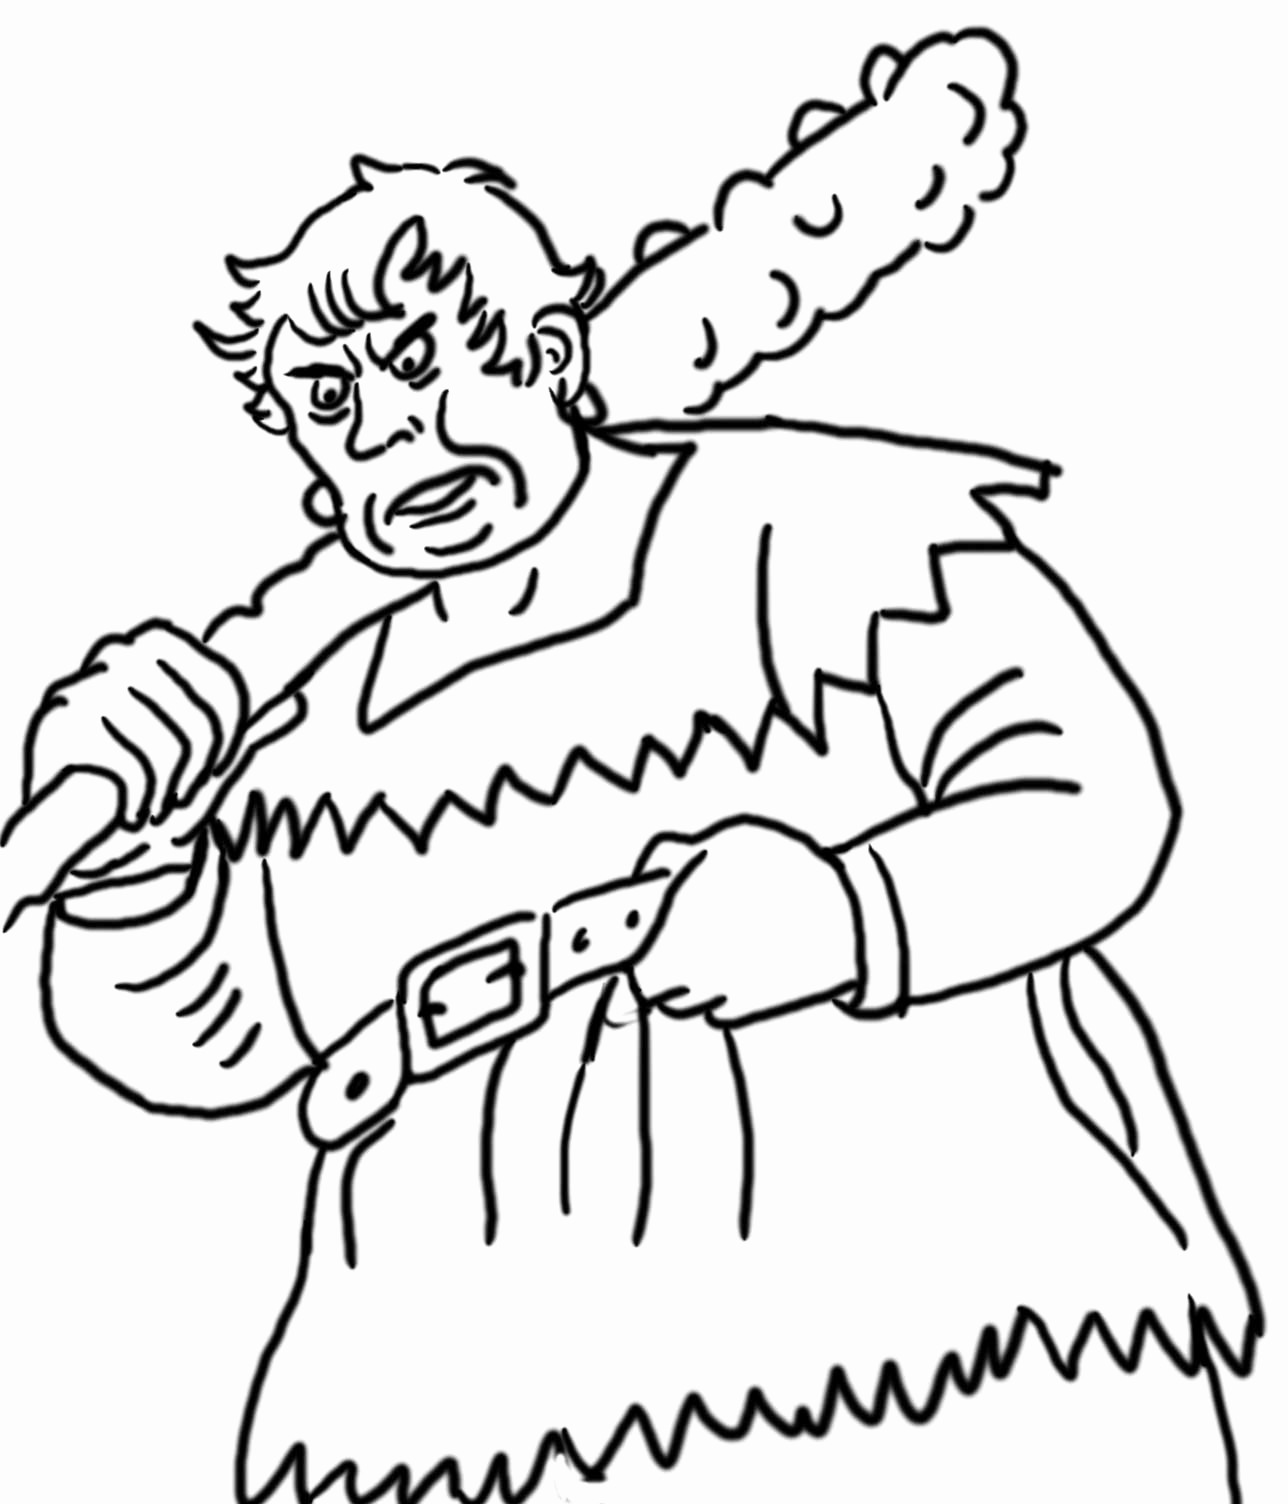 1288x1504 Crayola Giant Coloring Pages New Giant Coloring Pages